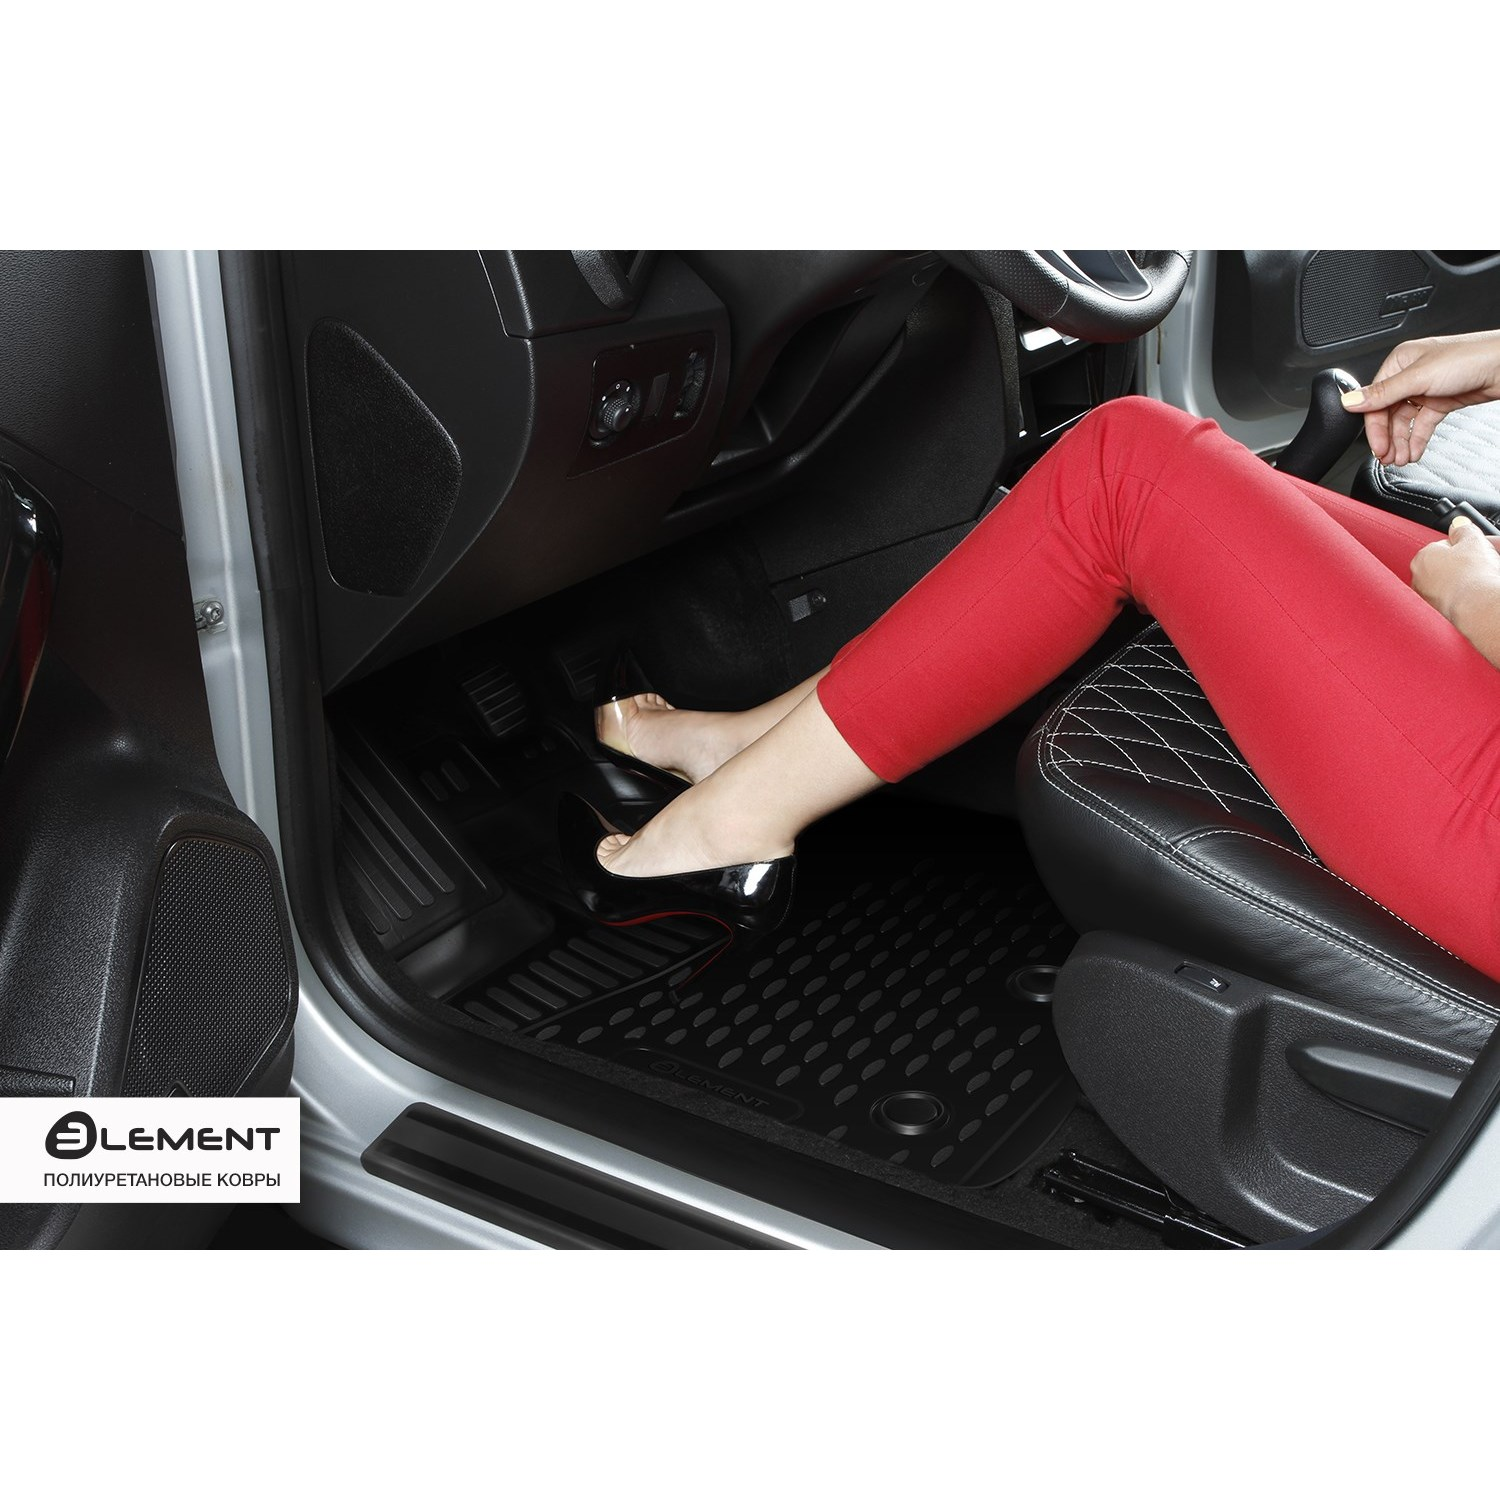 Floor Mats For TOYOTA Avensis 04/2003-2009, 4 Pcs Free Shipping (beige) NLC.48.04.212k